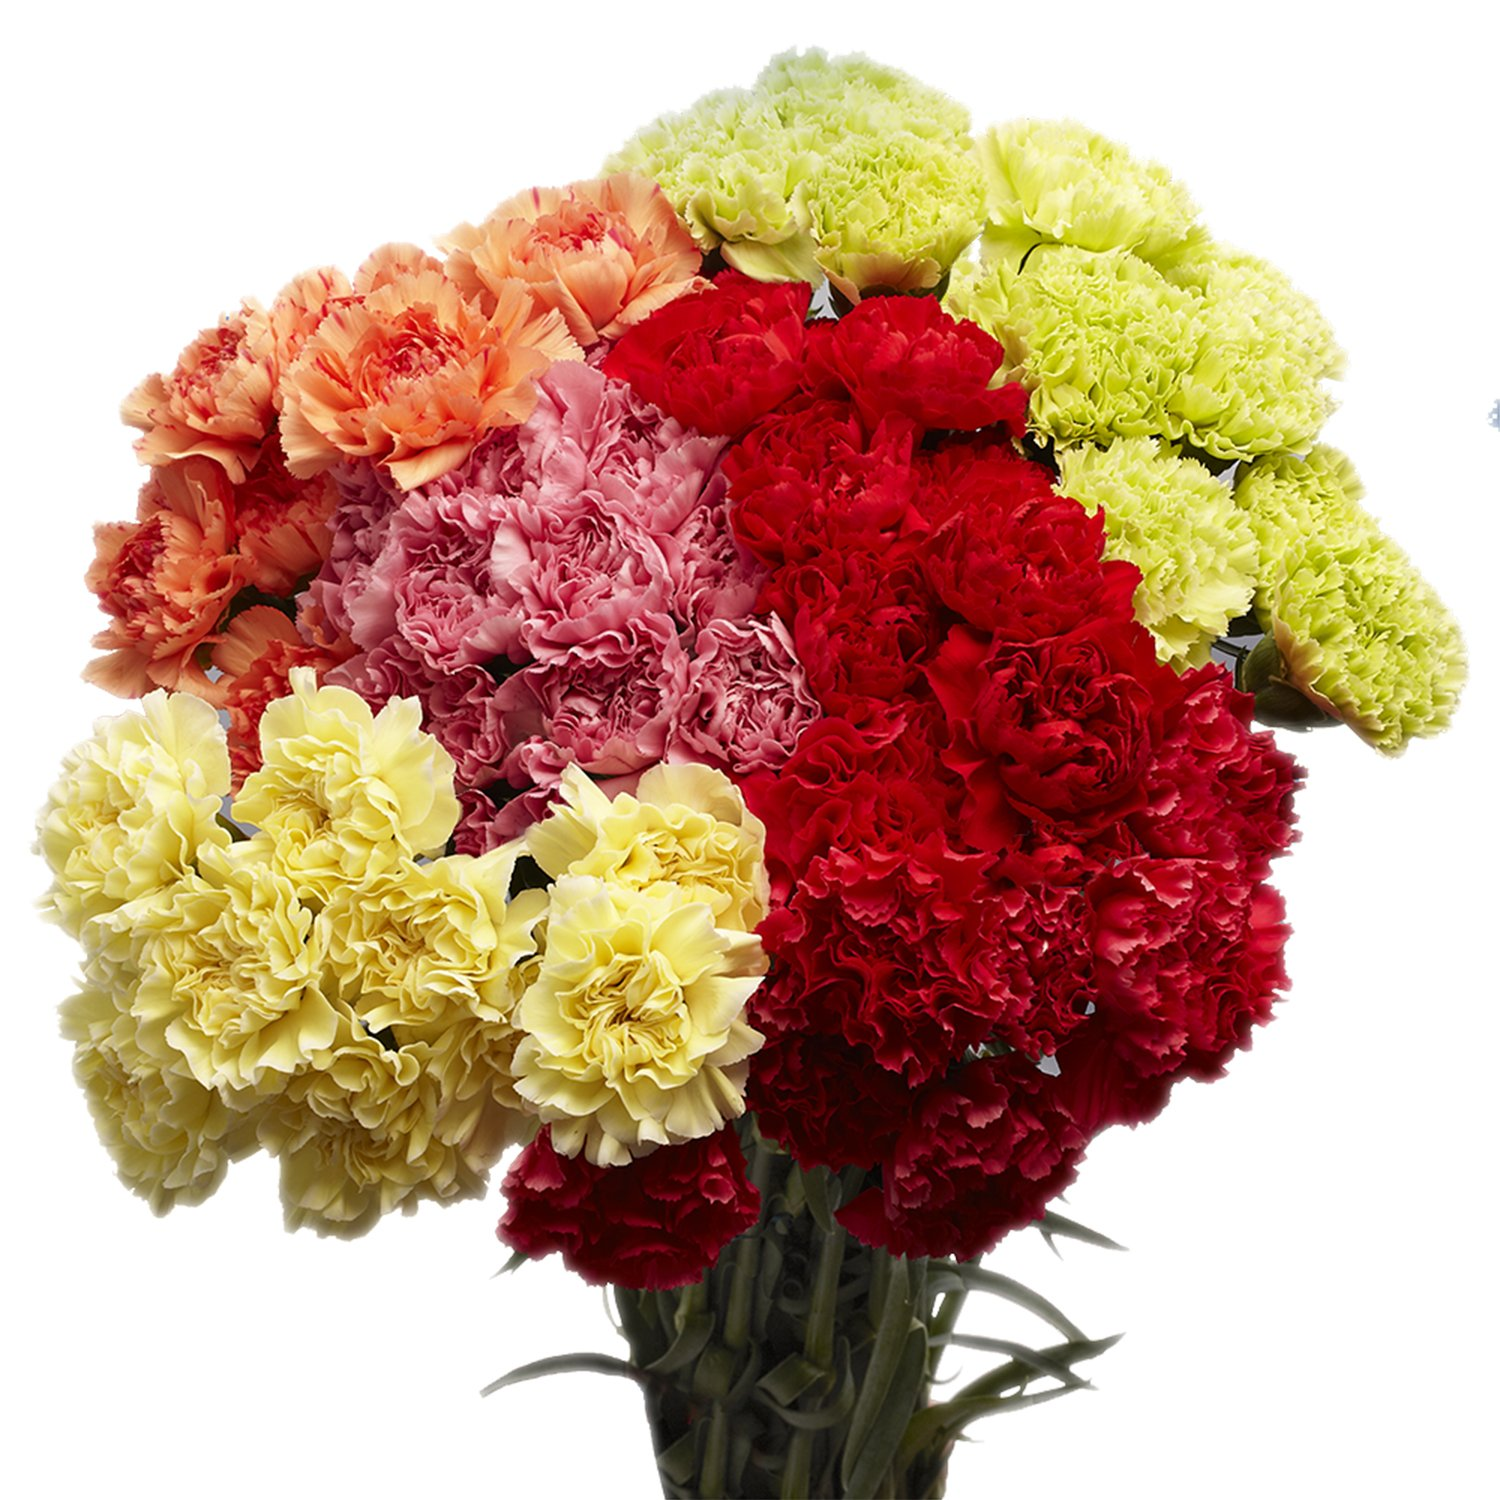 Amazon globalrose 100 assorted color carnations beautiful amazon globalrose 100 assorted color carnations beautiful flowers absolutely fresh fresh cut format carnation flowers grocery gourmet food izmirmasajfo